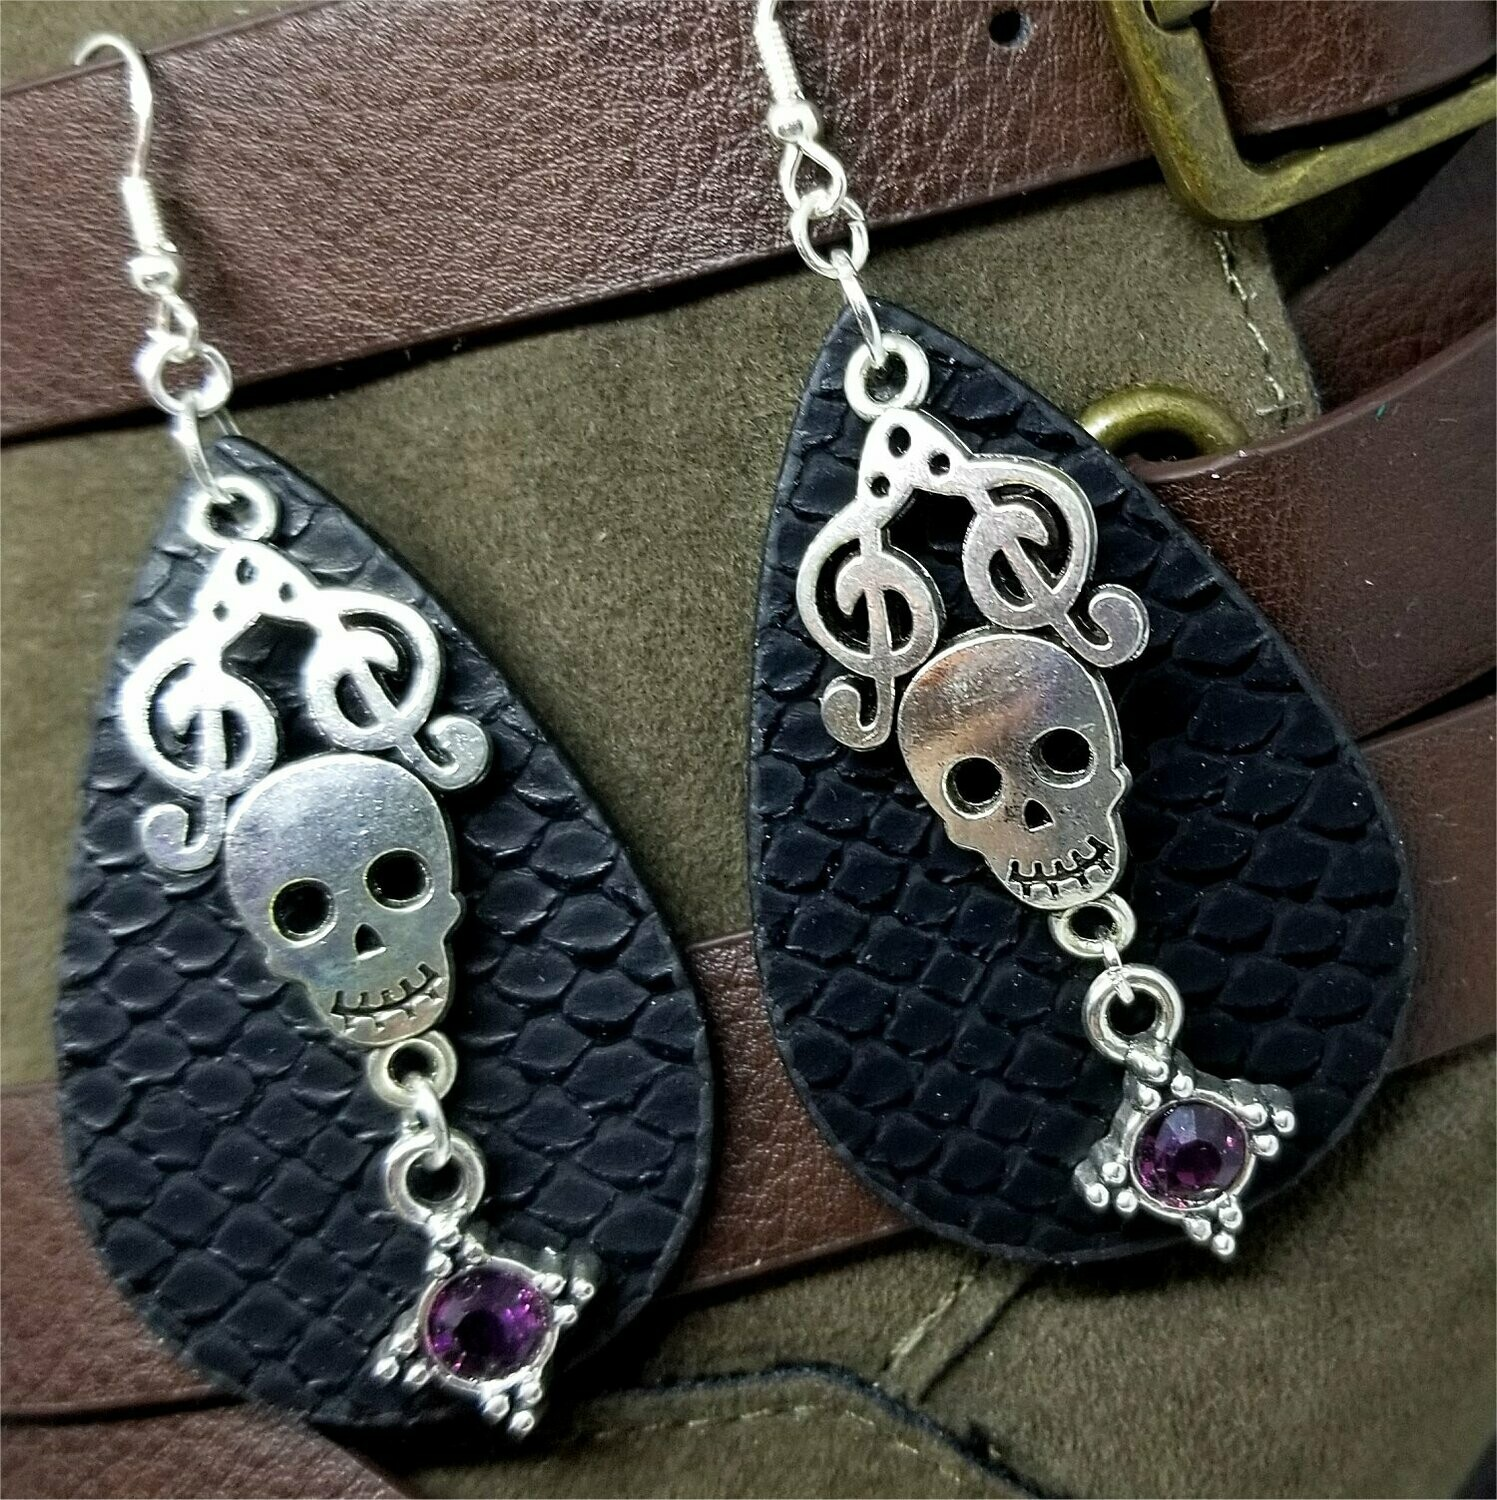 Patterned Faux Leather Teardrop Shaped Earrings with a Skull and Clef Note Charm and Crystal Charms